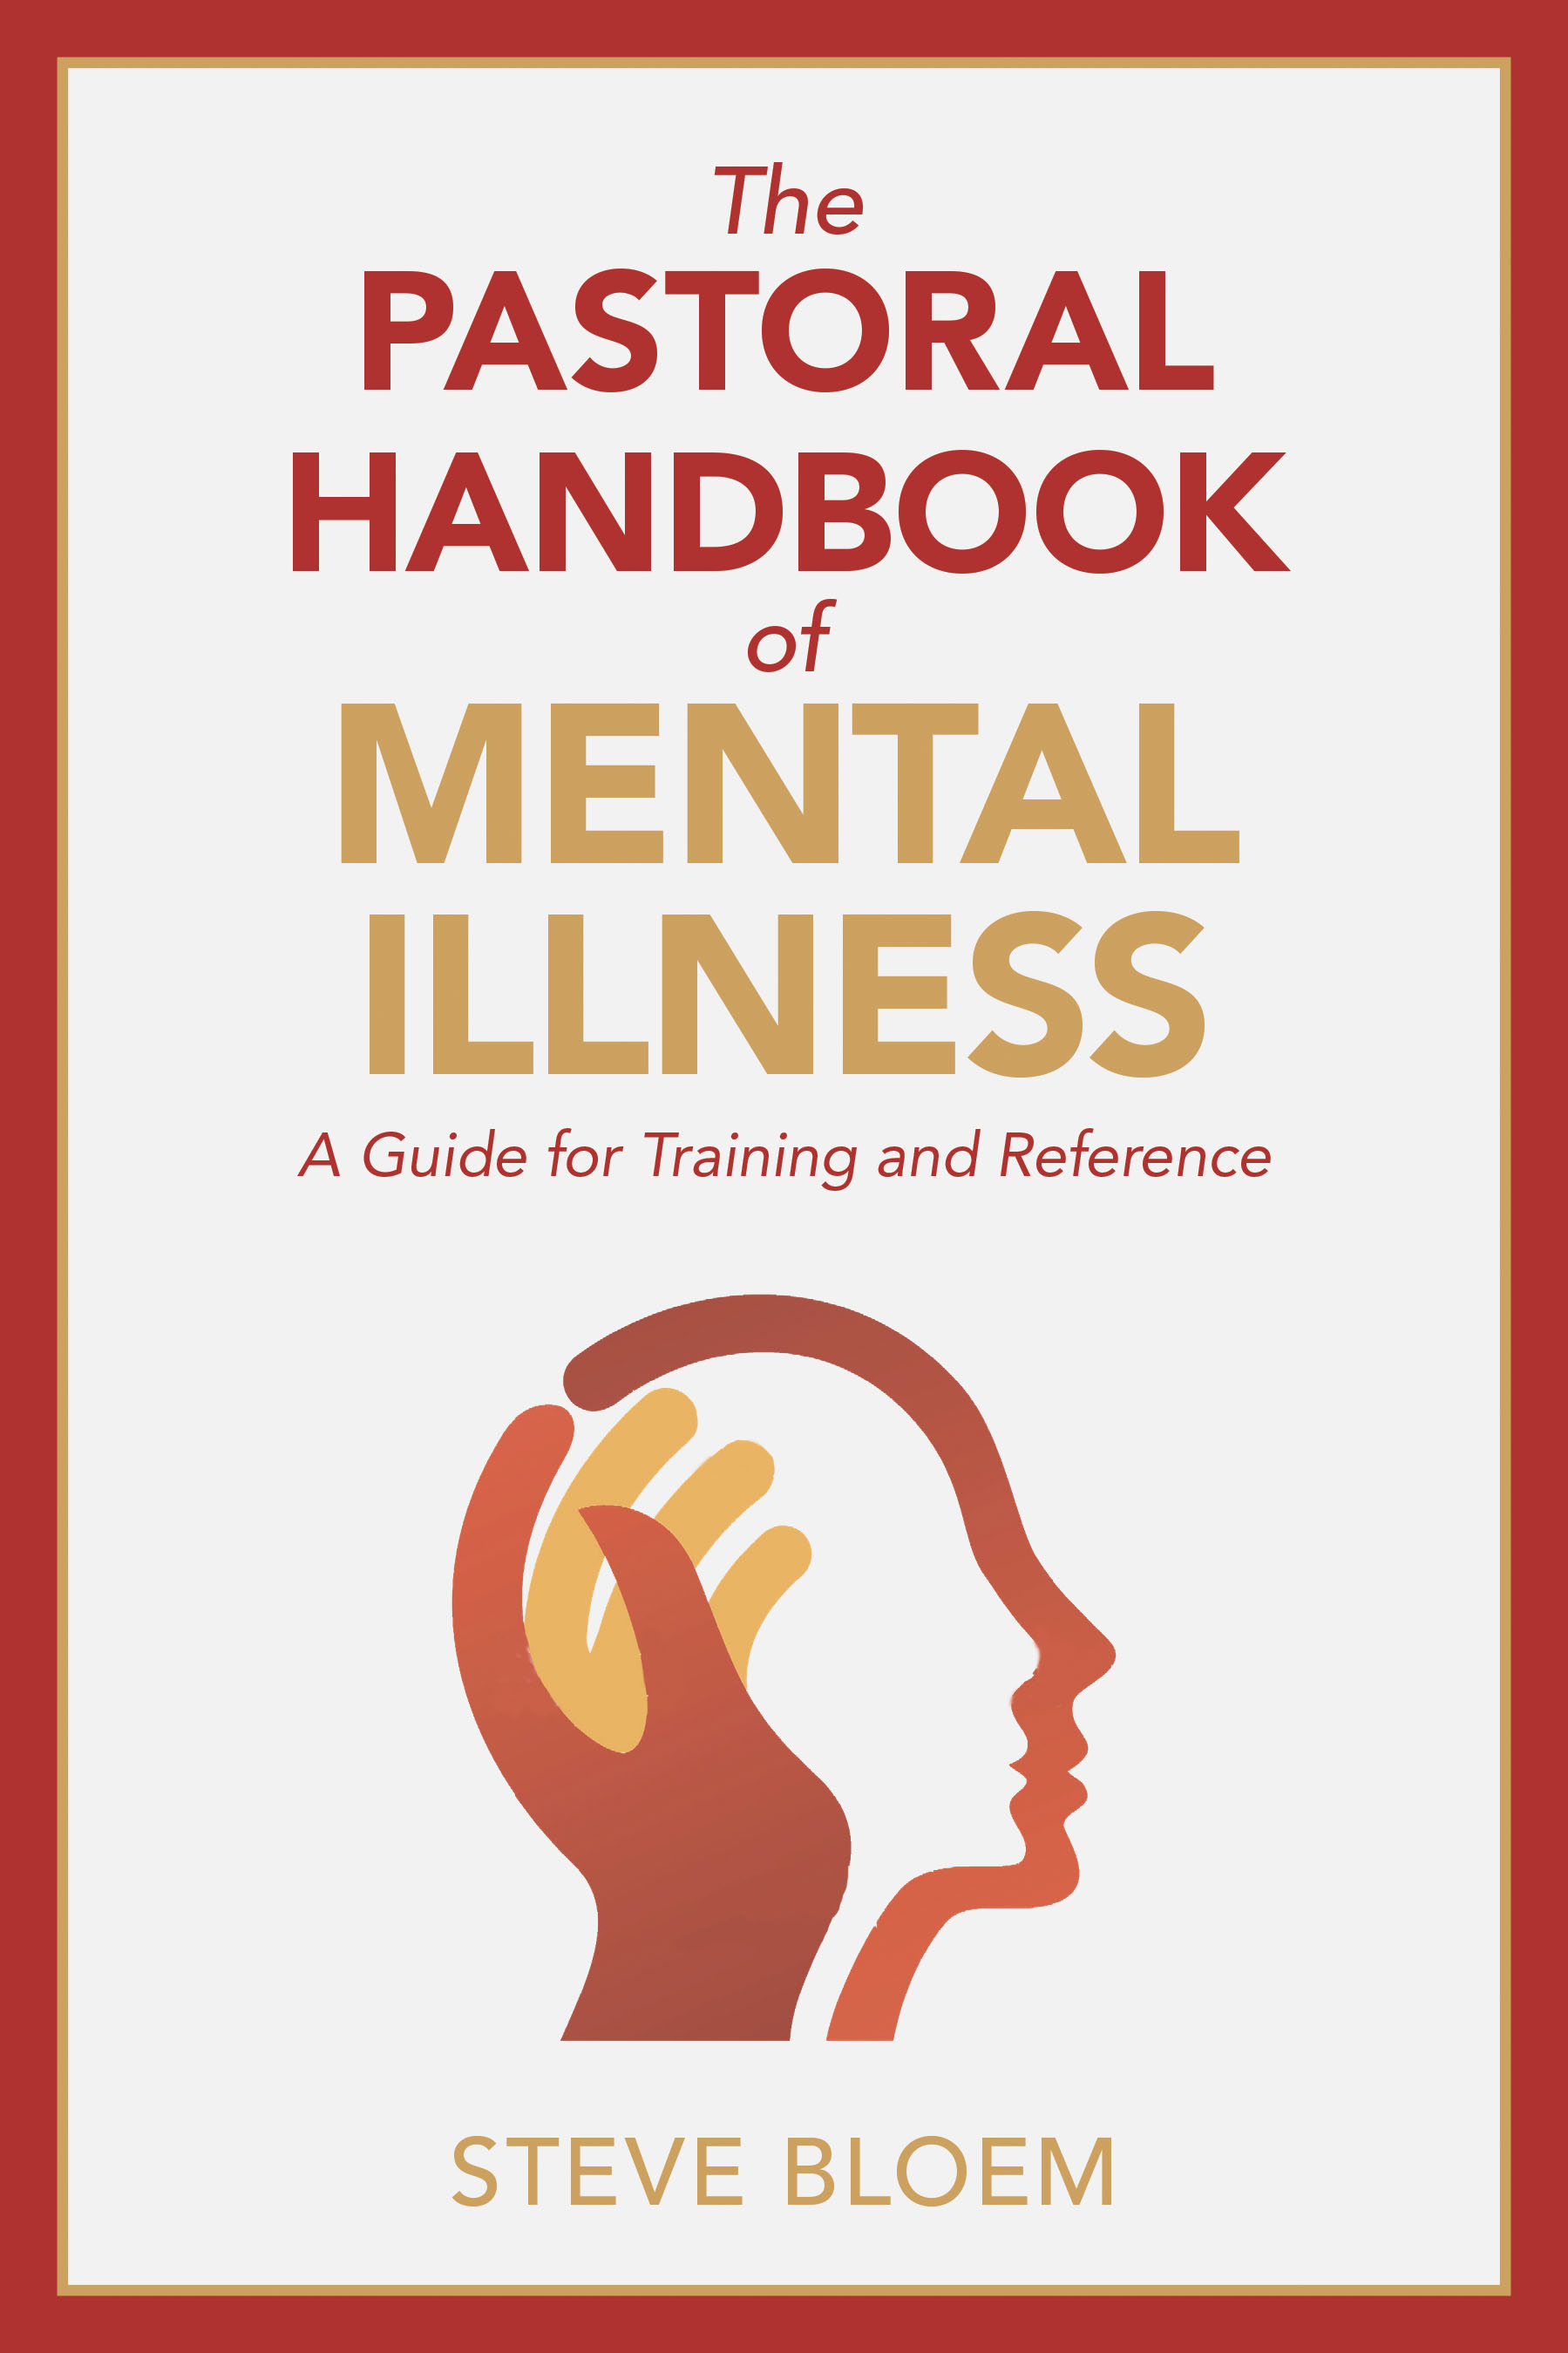 The Pastoral Handbook of Mental Illness